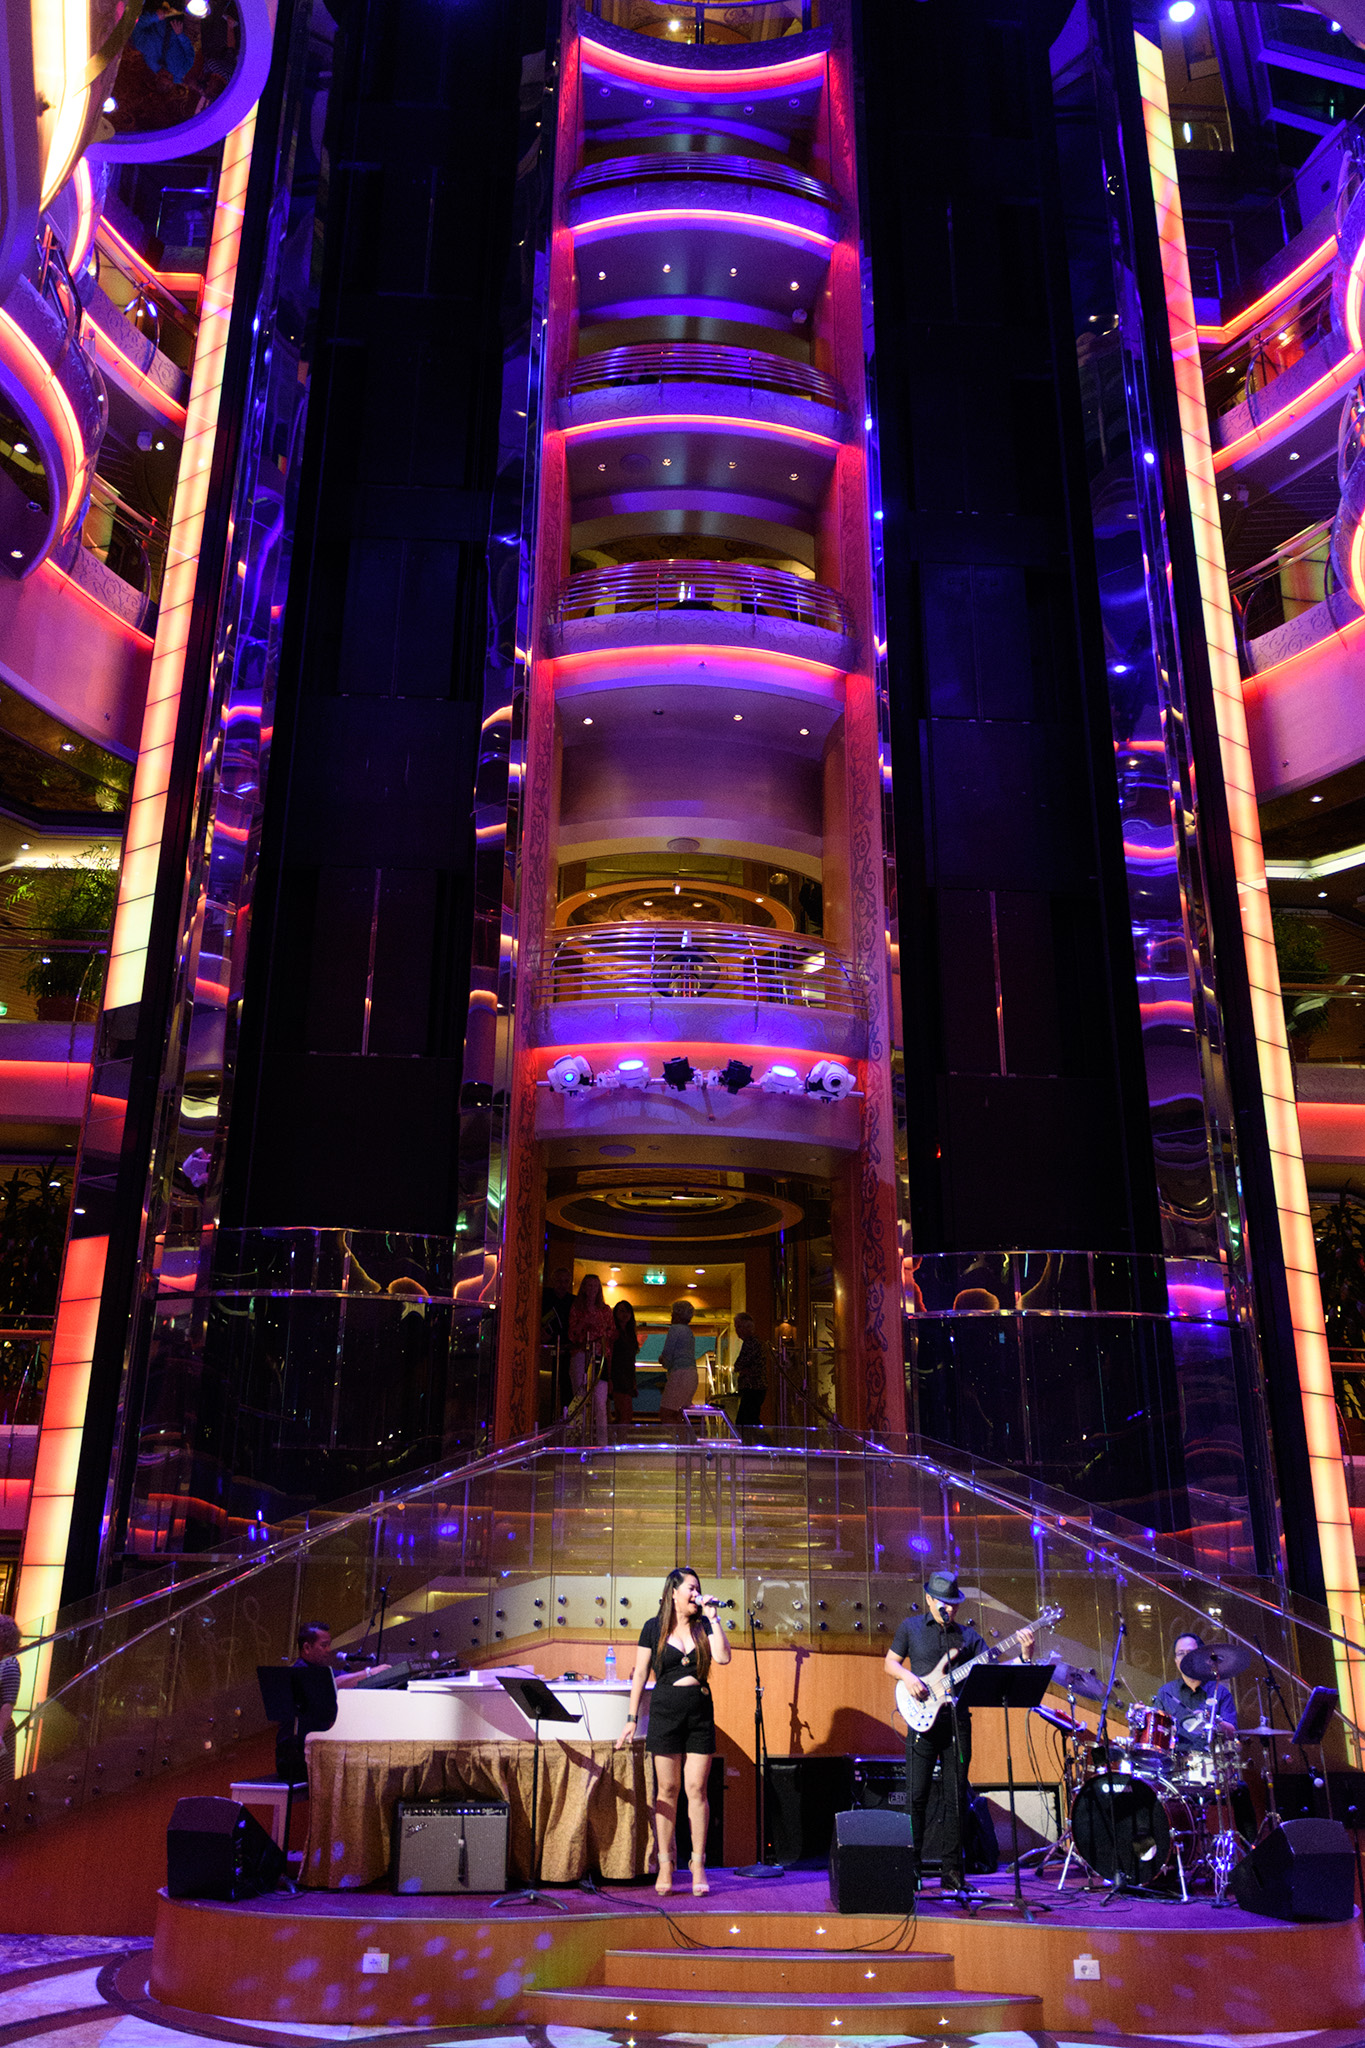 20170310 - Rhapsody of the Seas - 280.jpg